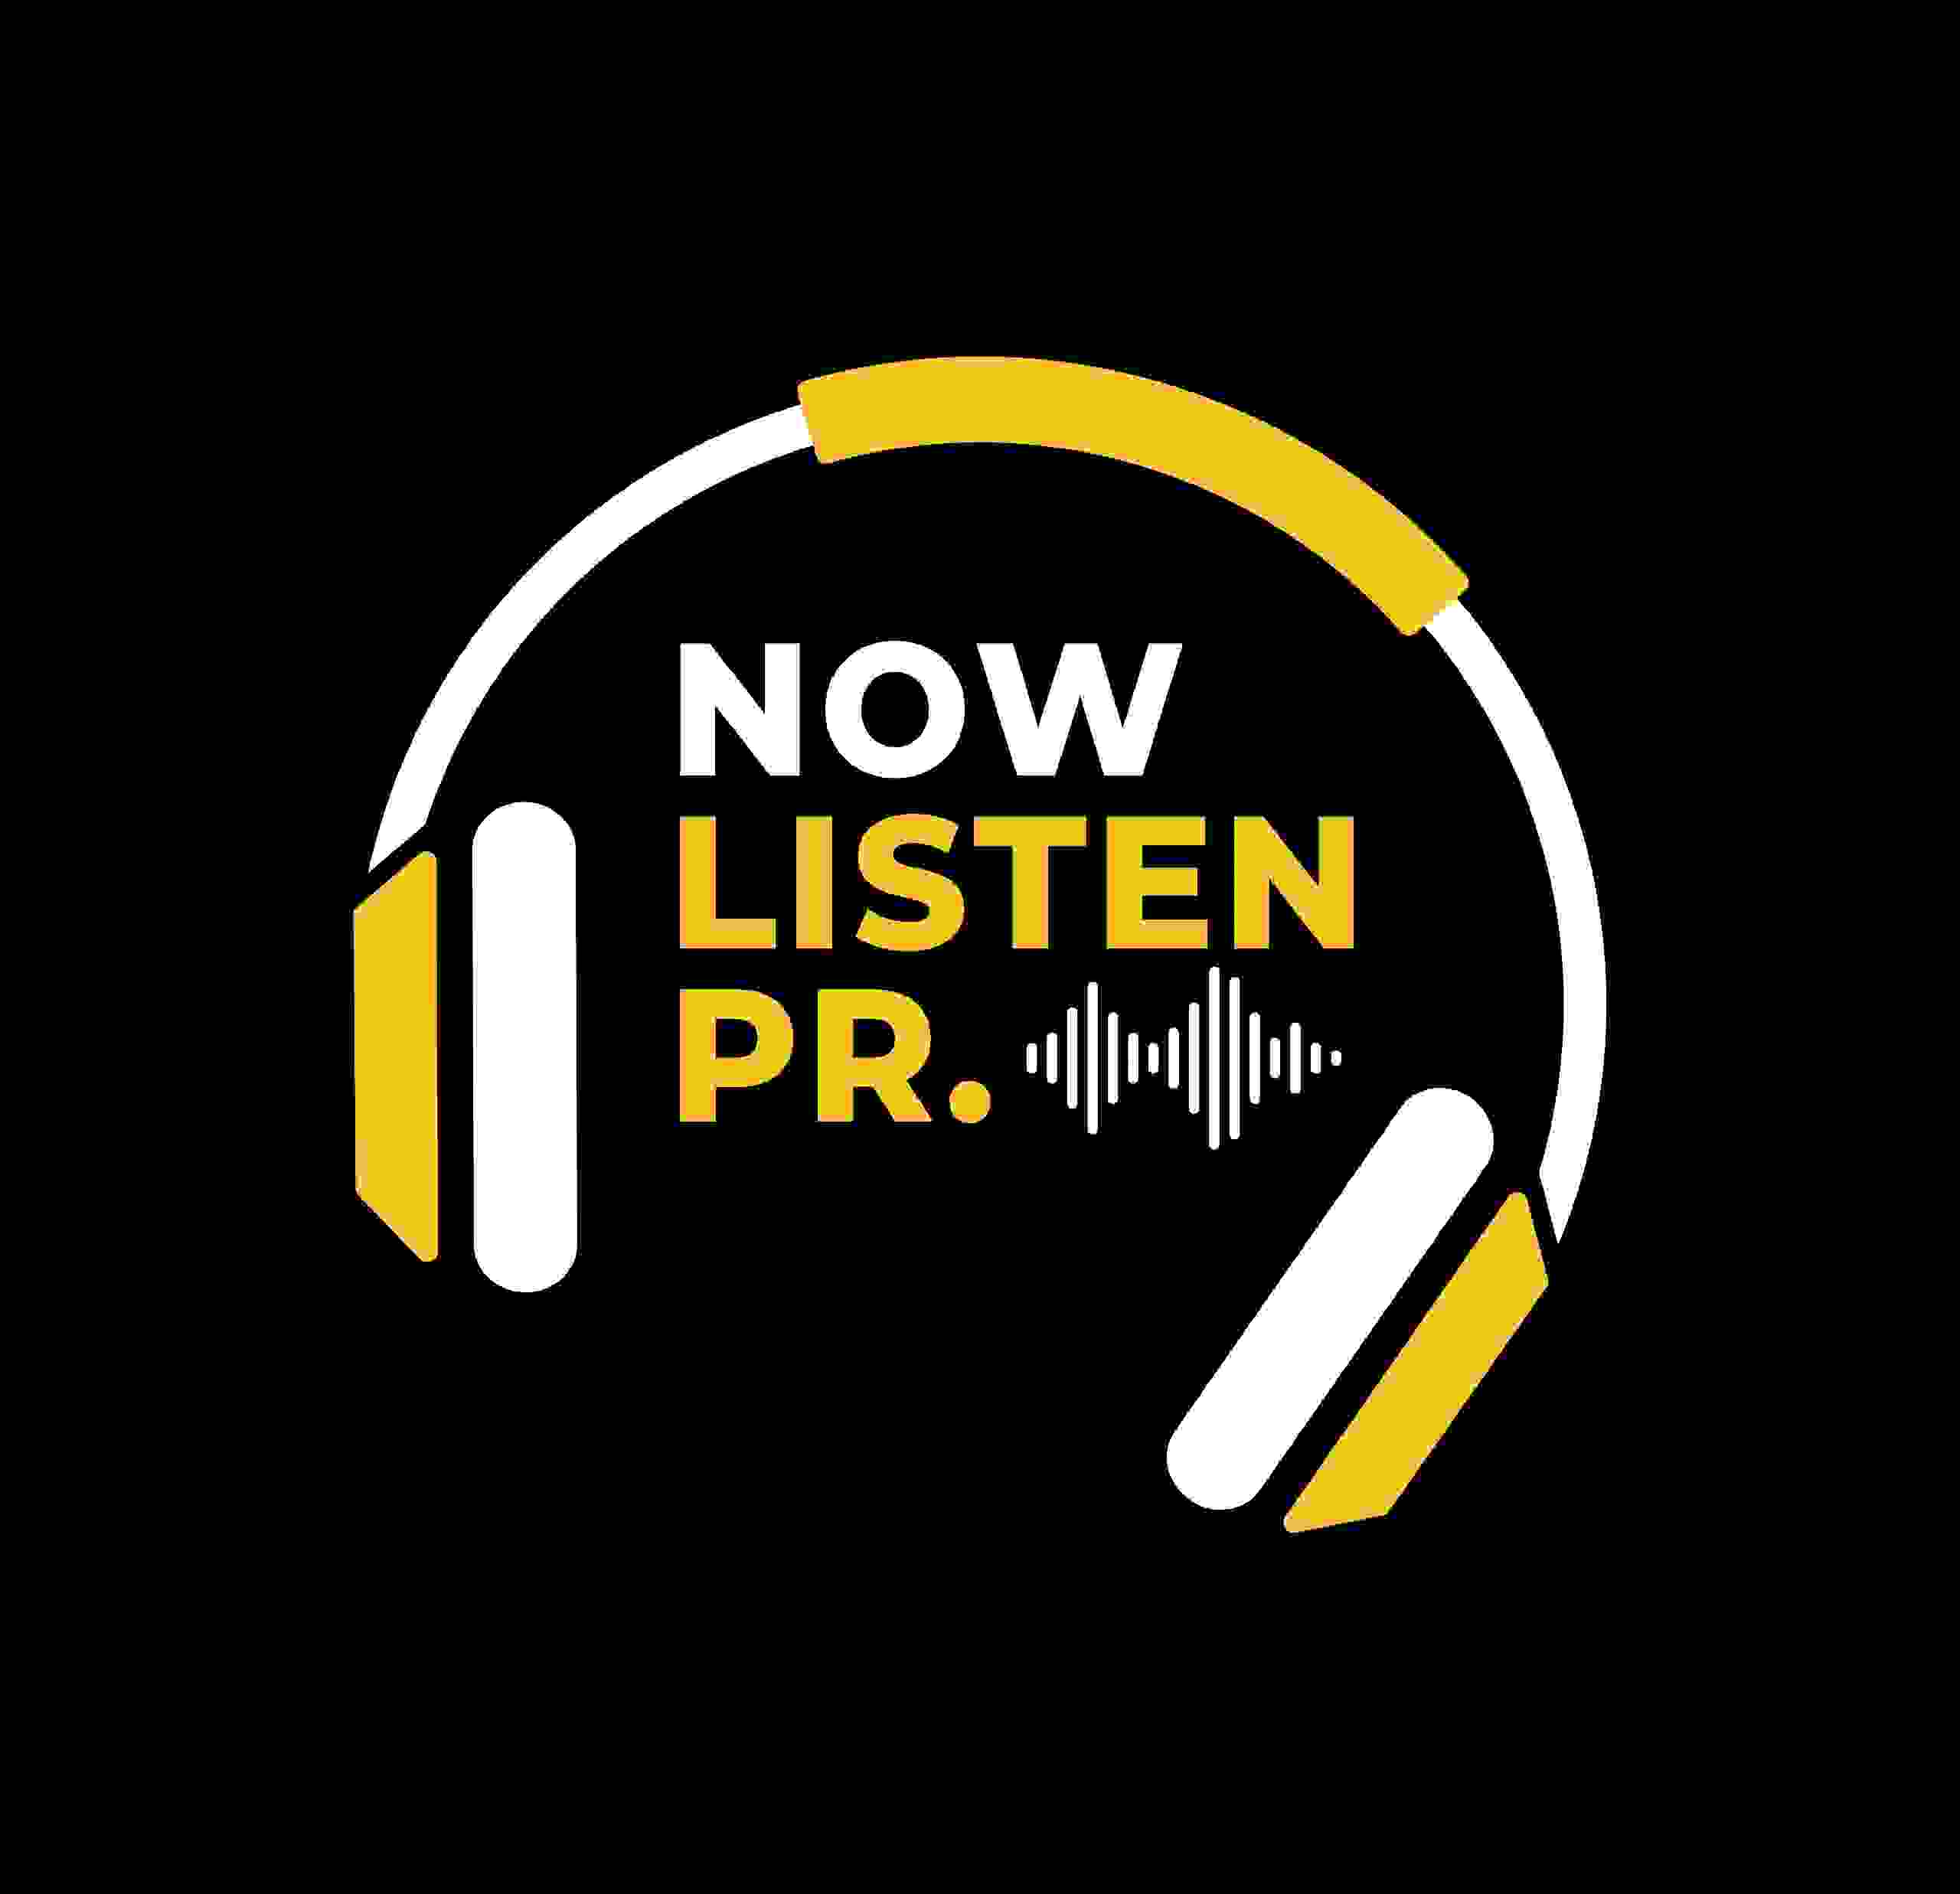 Now Listen PR #1 Digital Music Marketing